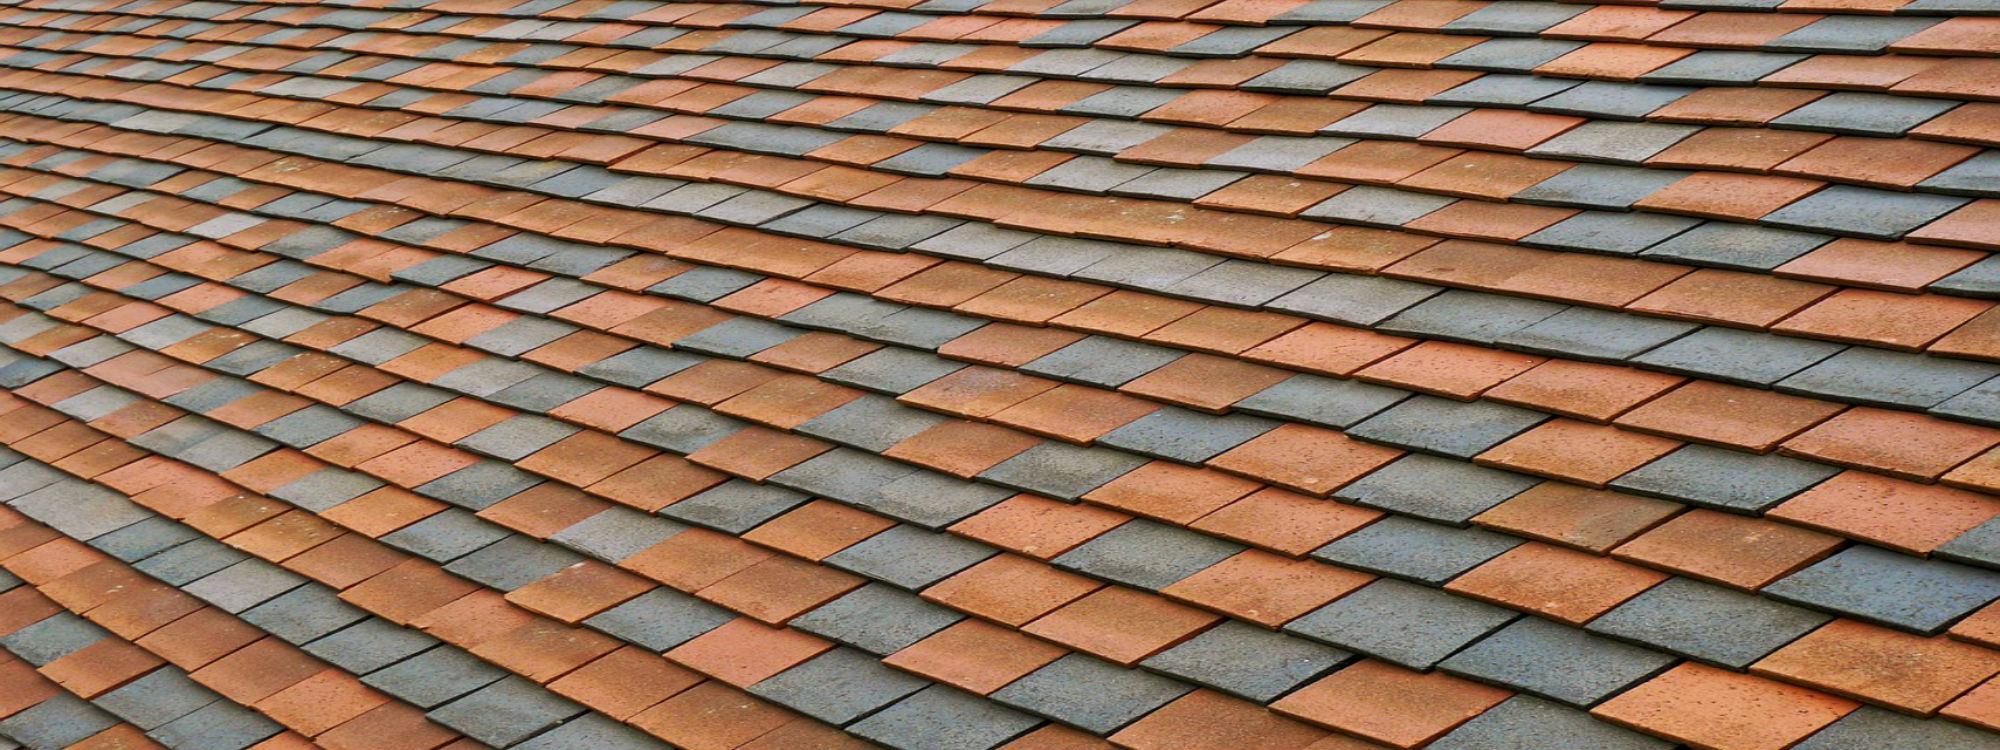 Concrete And Clay Tiles Dmr Roofing Centre Ltd